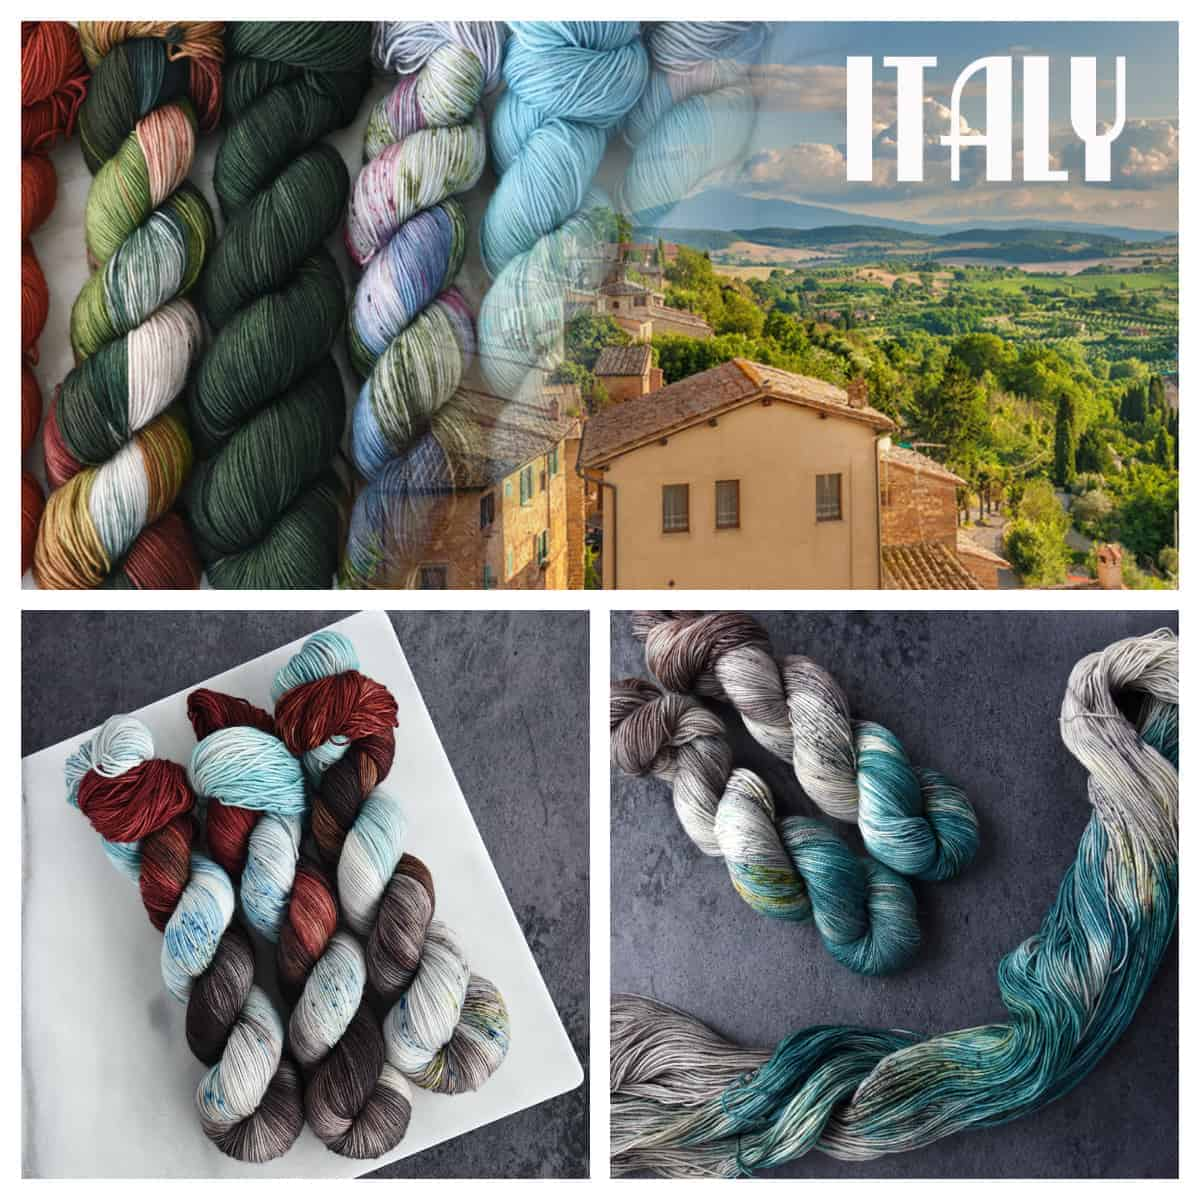 Yarn collage from Destination Yarn